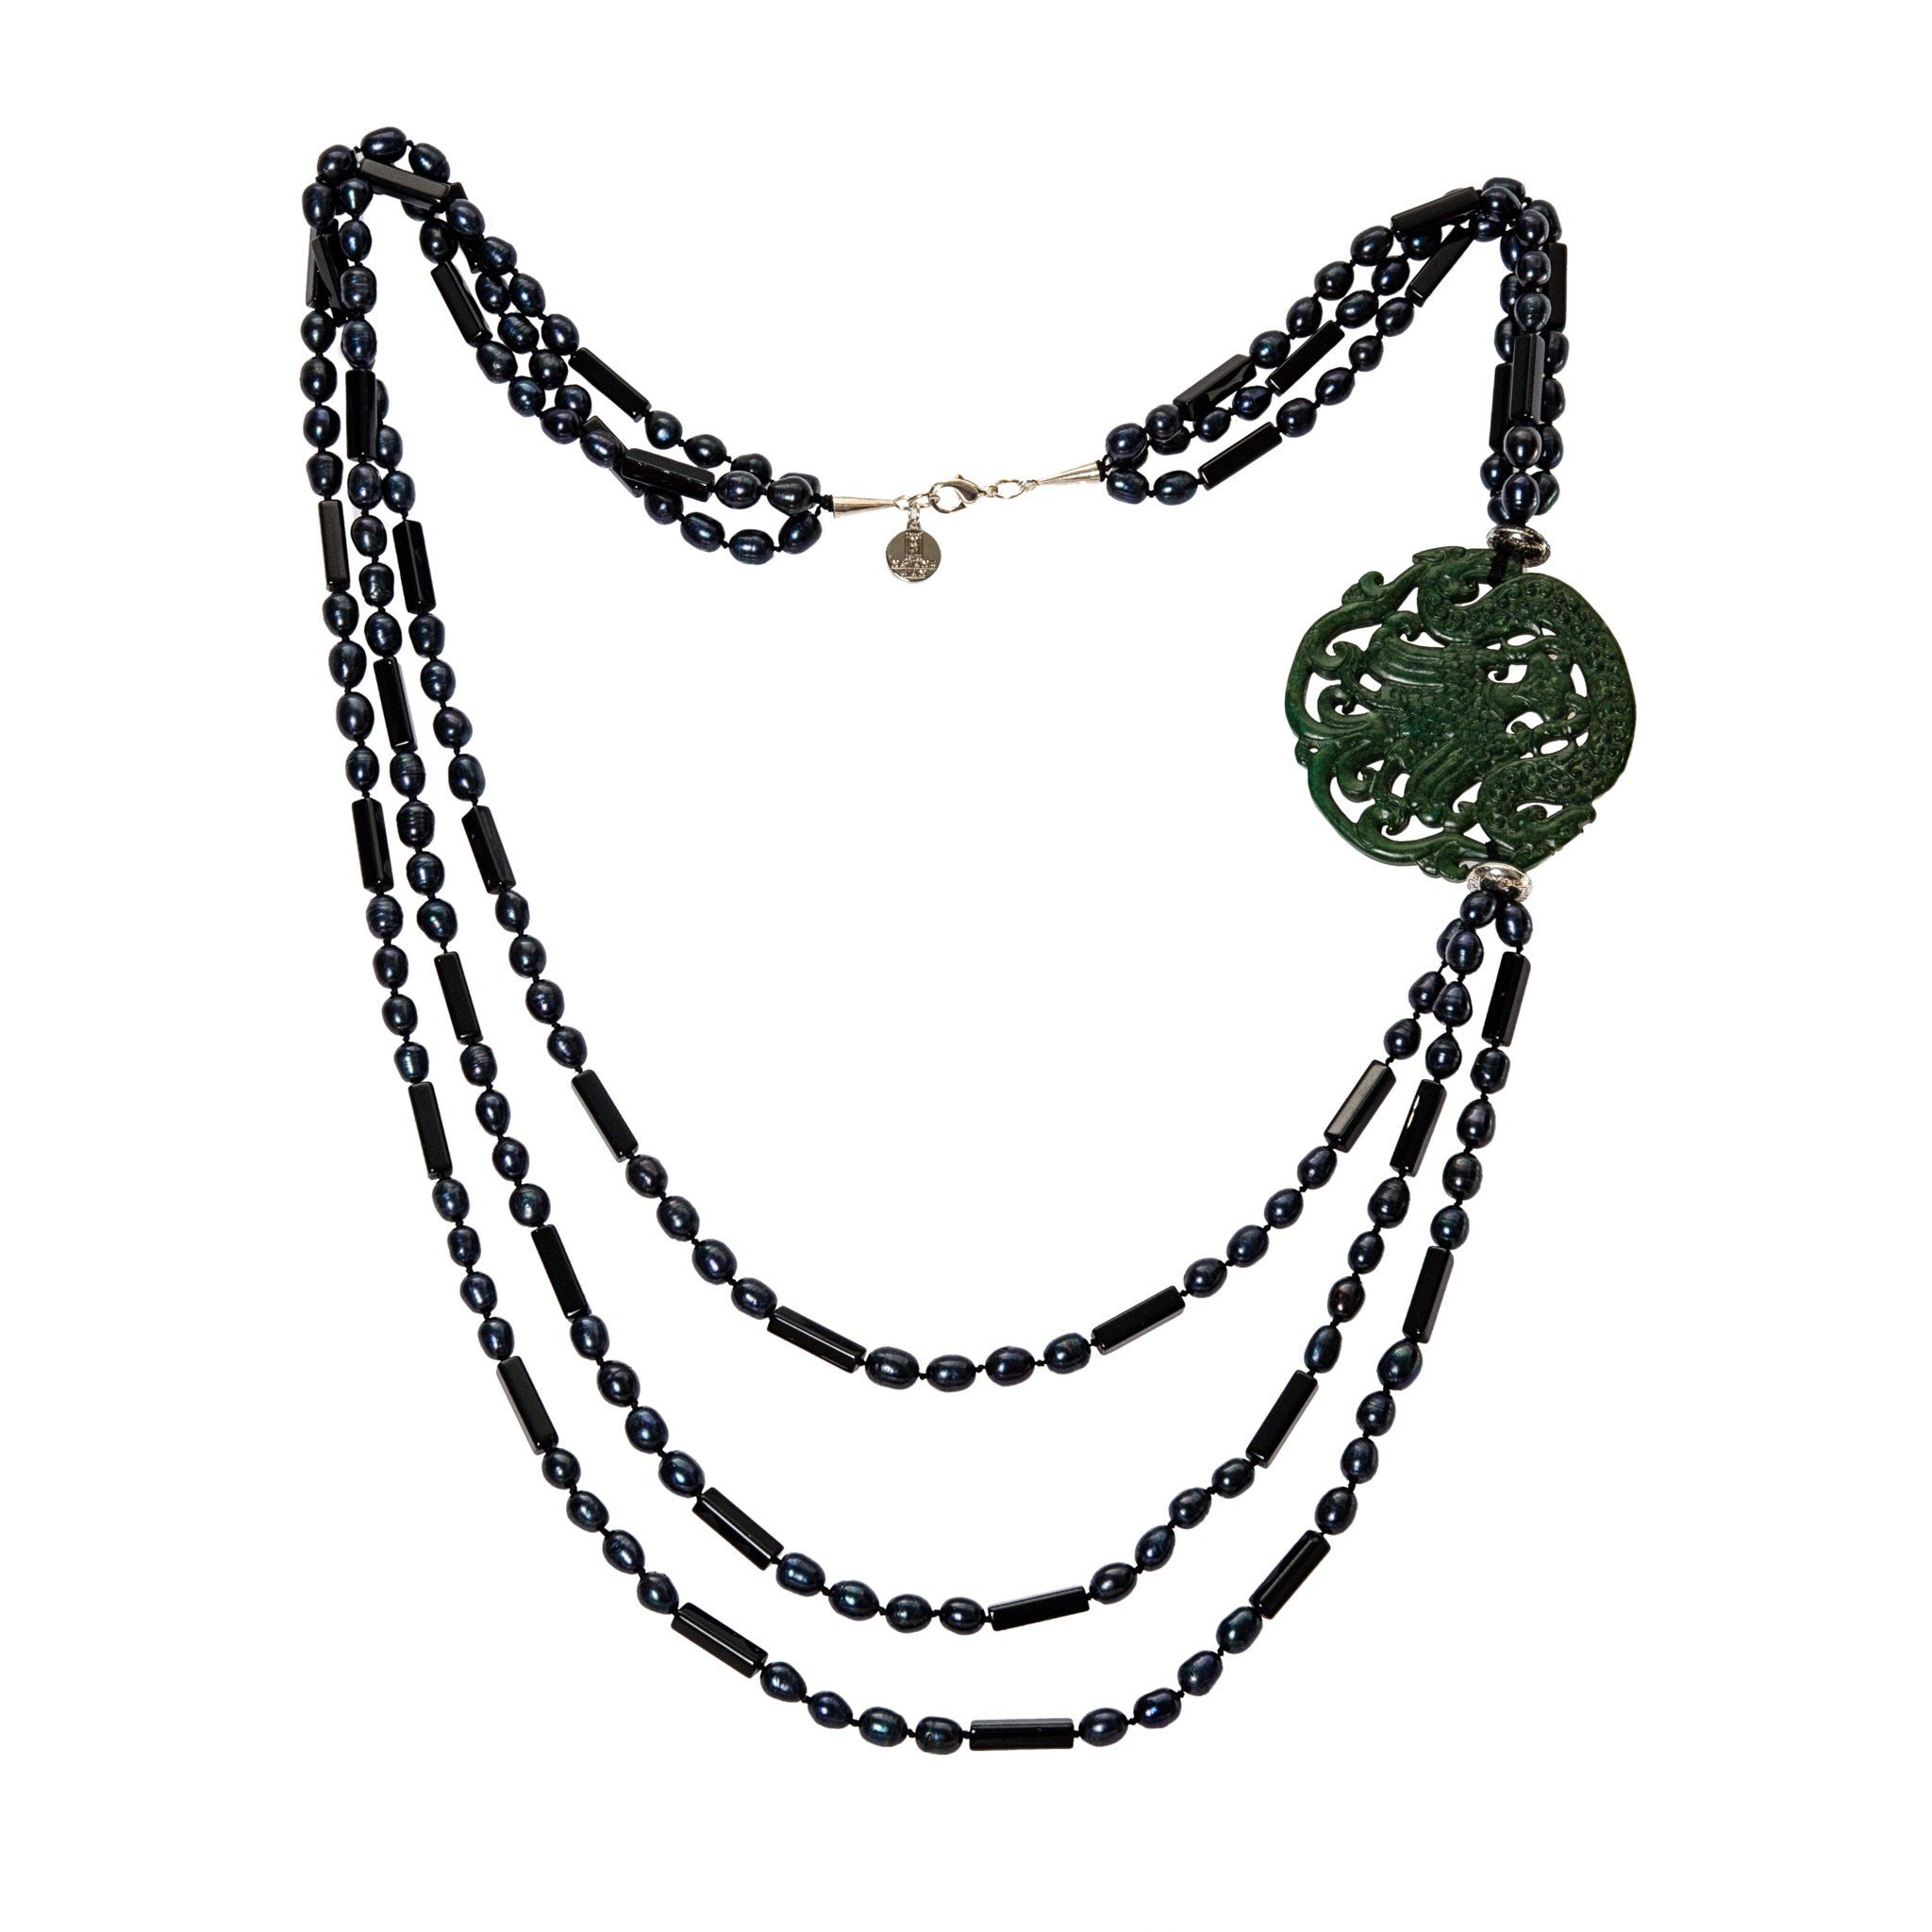 MEKONG grey pearls necklace - MadamSiam